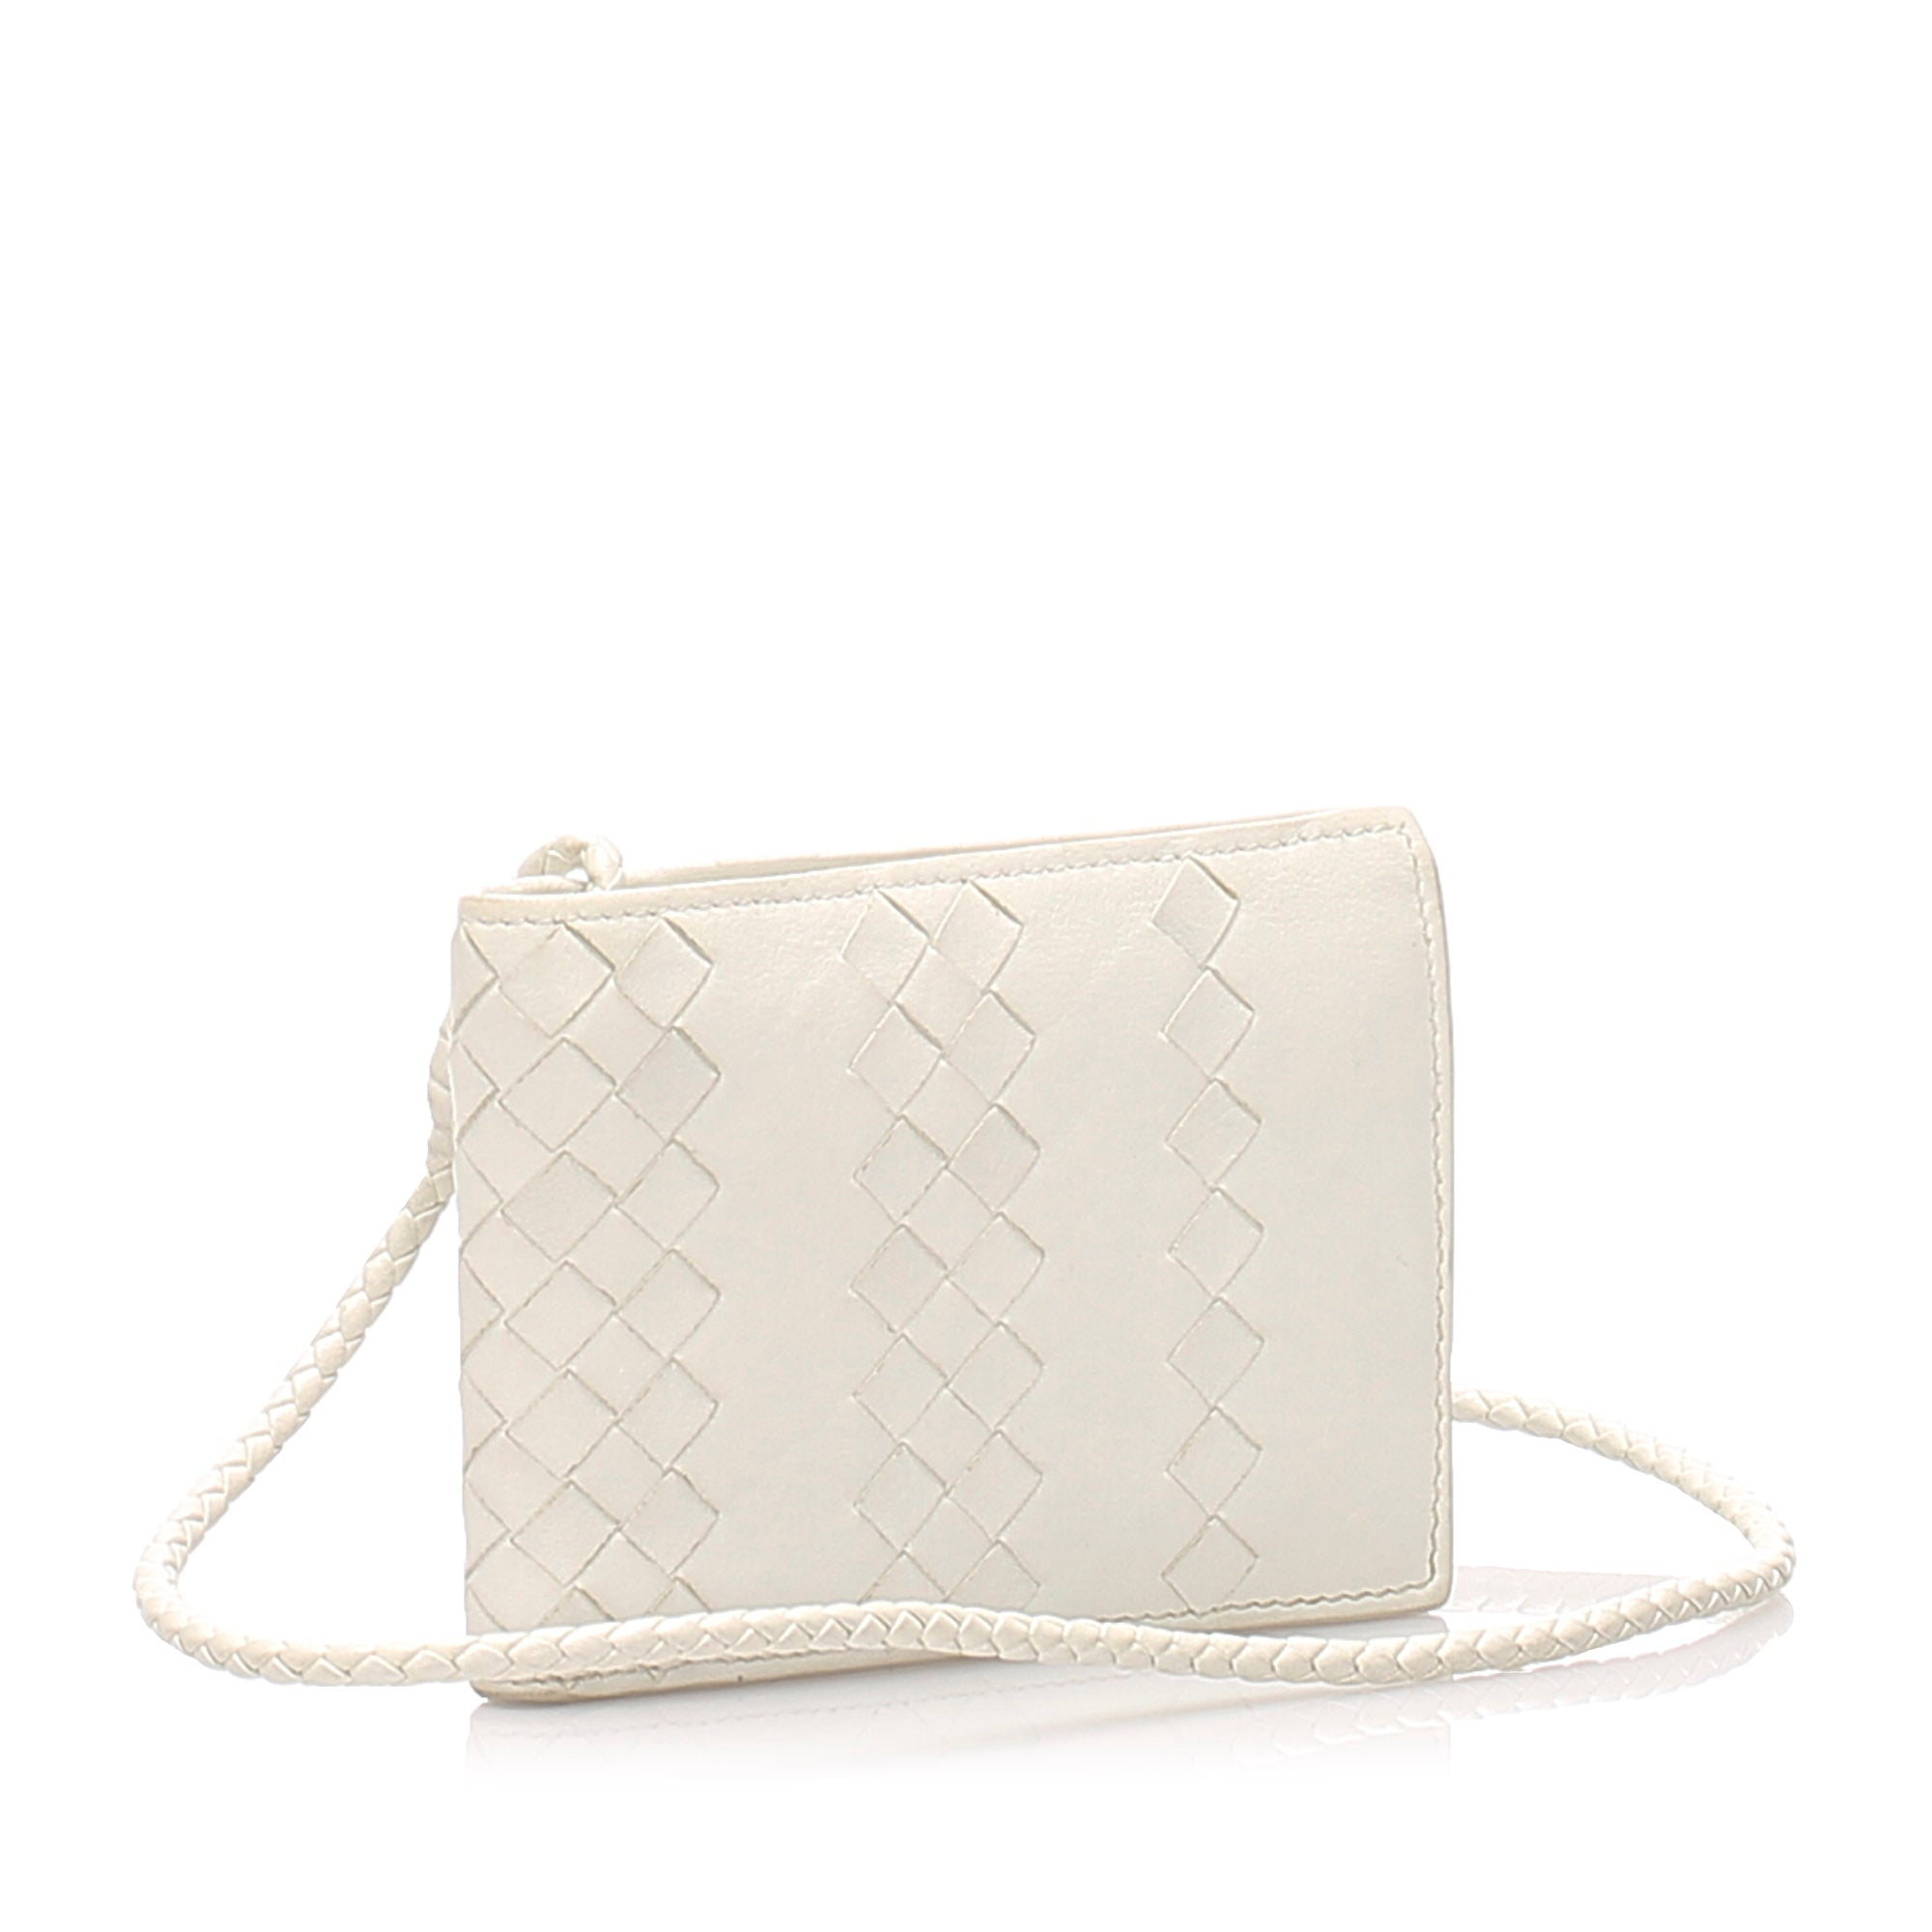 Bottega Veneta White Intrecciato Leather Small Wallet